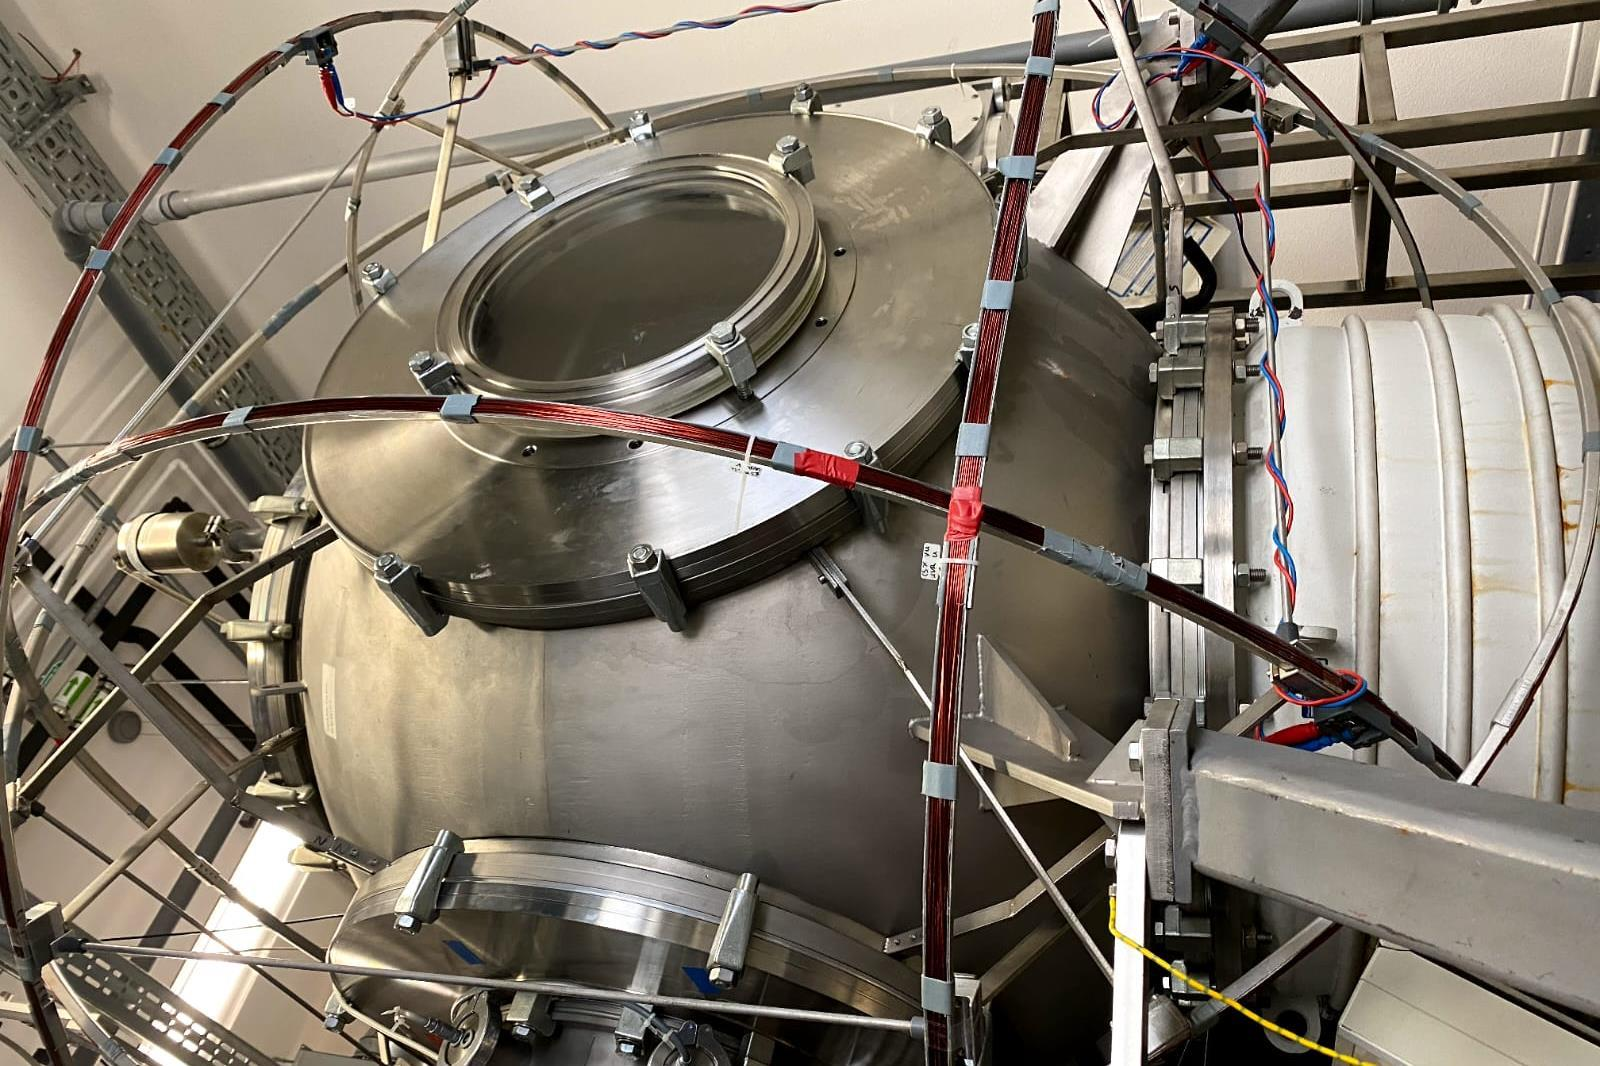 Serendipitous experiment on xenon complex reveals insights into rare gas interaction